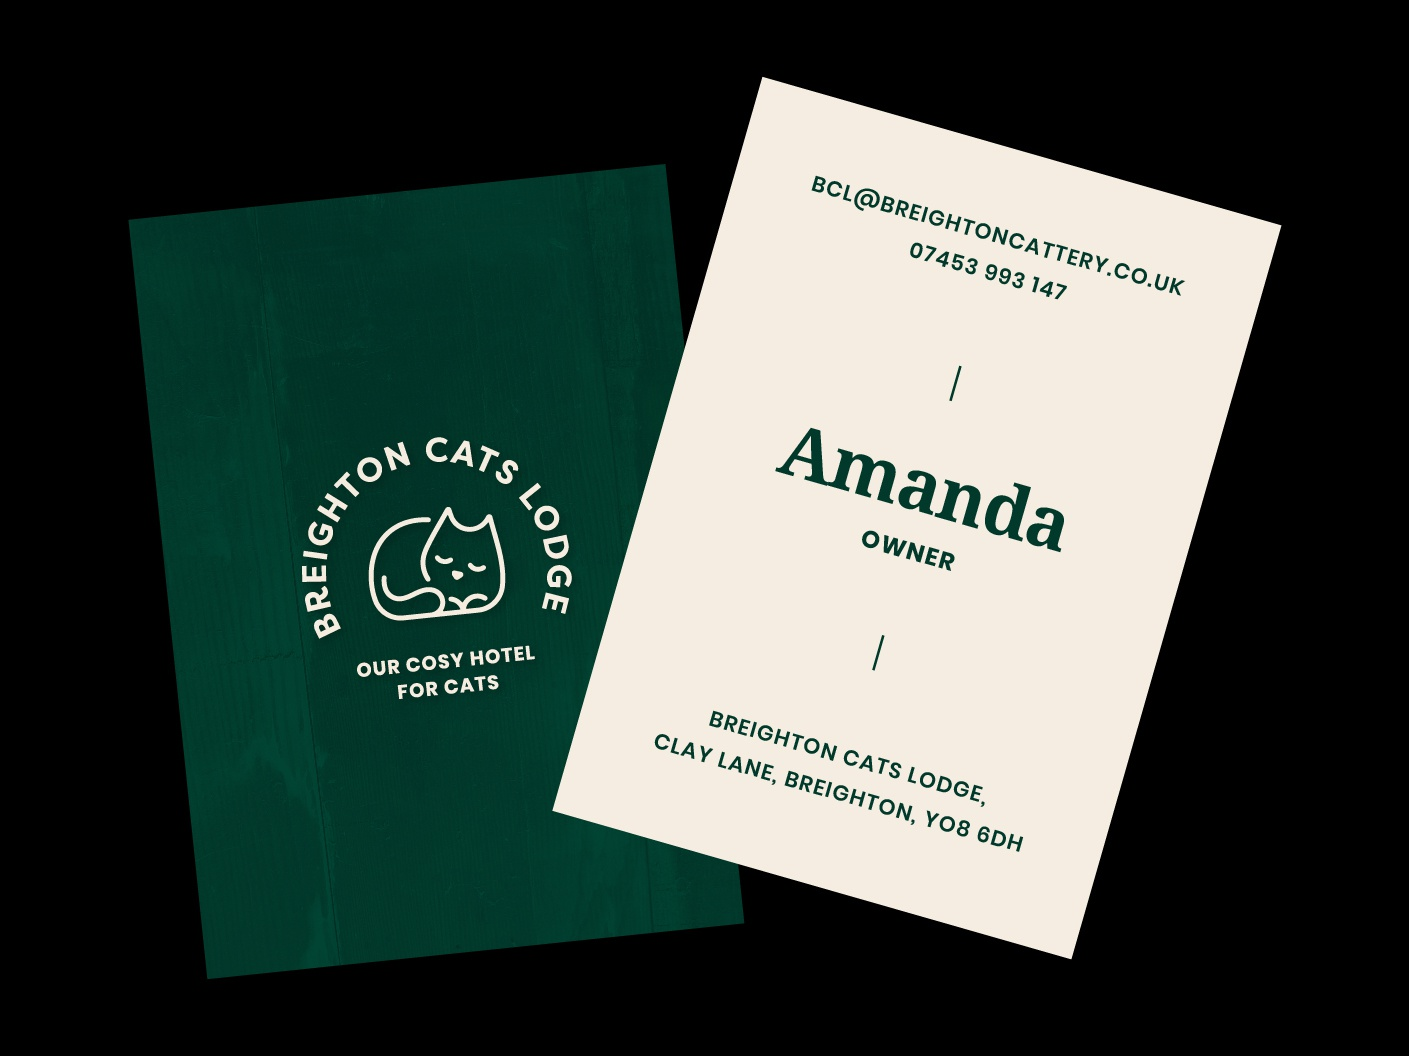 Cat Lodge Business Cards sleeping cat cat illustration roll out print design brand assets serif typography business cards brand identity cream green lodge hotel cat badge brand